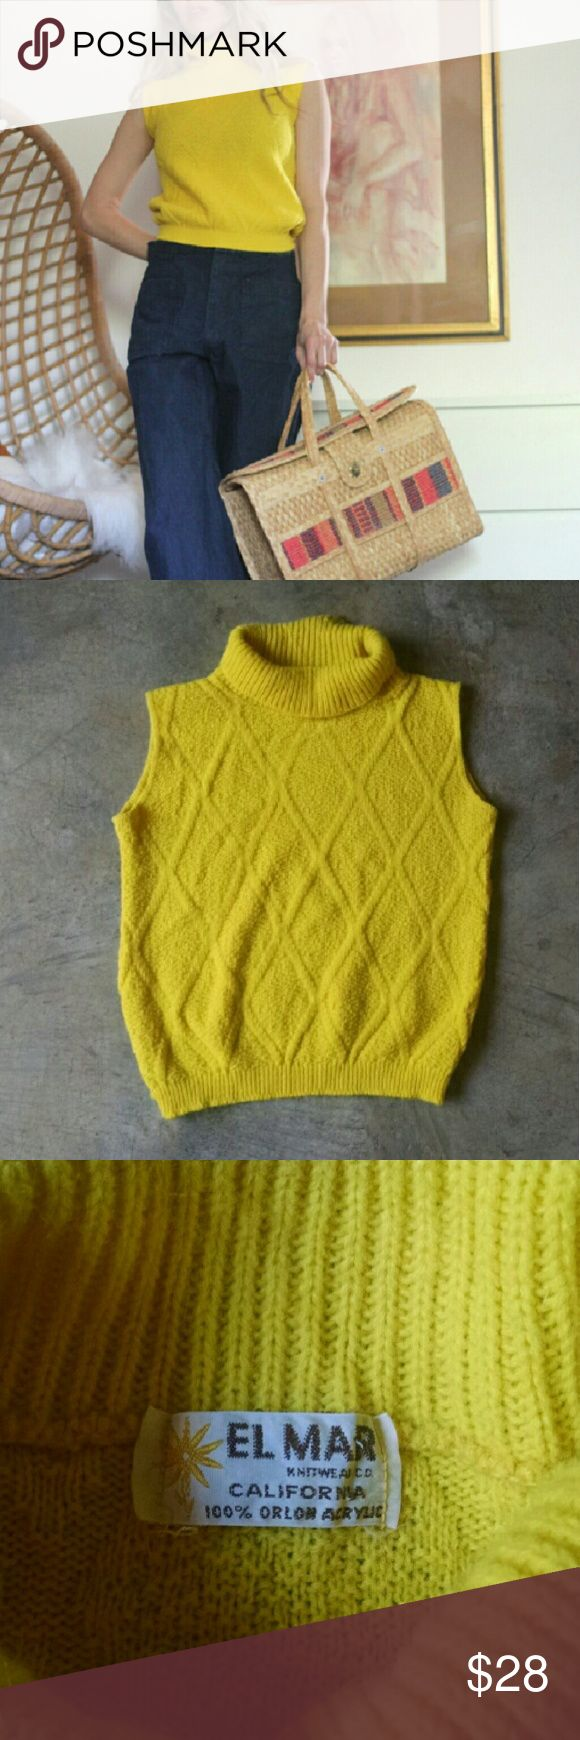 "Vintage 60s 70s Knit Vest Top Sunshine in a top  bright yellow knit 60s 70s vintage knit sleeveless turtleneck top estimated size m but could fit various sizes depending very much on desired fit. armpit 18"" length: 19"" has some stretch Shown on 5?8? size 4/32d.  has some pilling/just normal wear to the fabric from age/wash/wear but looks great overall. 60s vintage yellow shirt top mod hippie boho summer knit coachella festival vest sweater Vintage Tops"